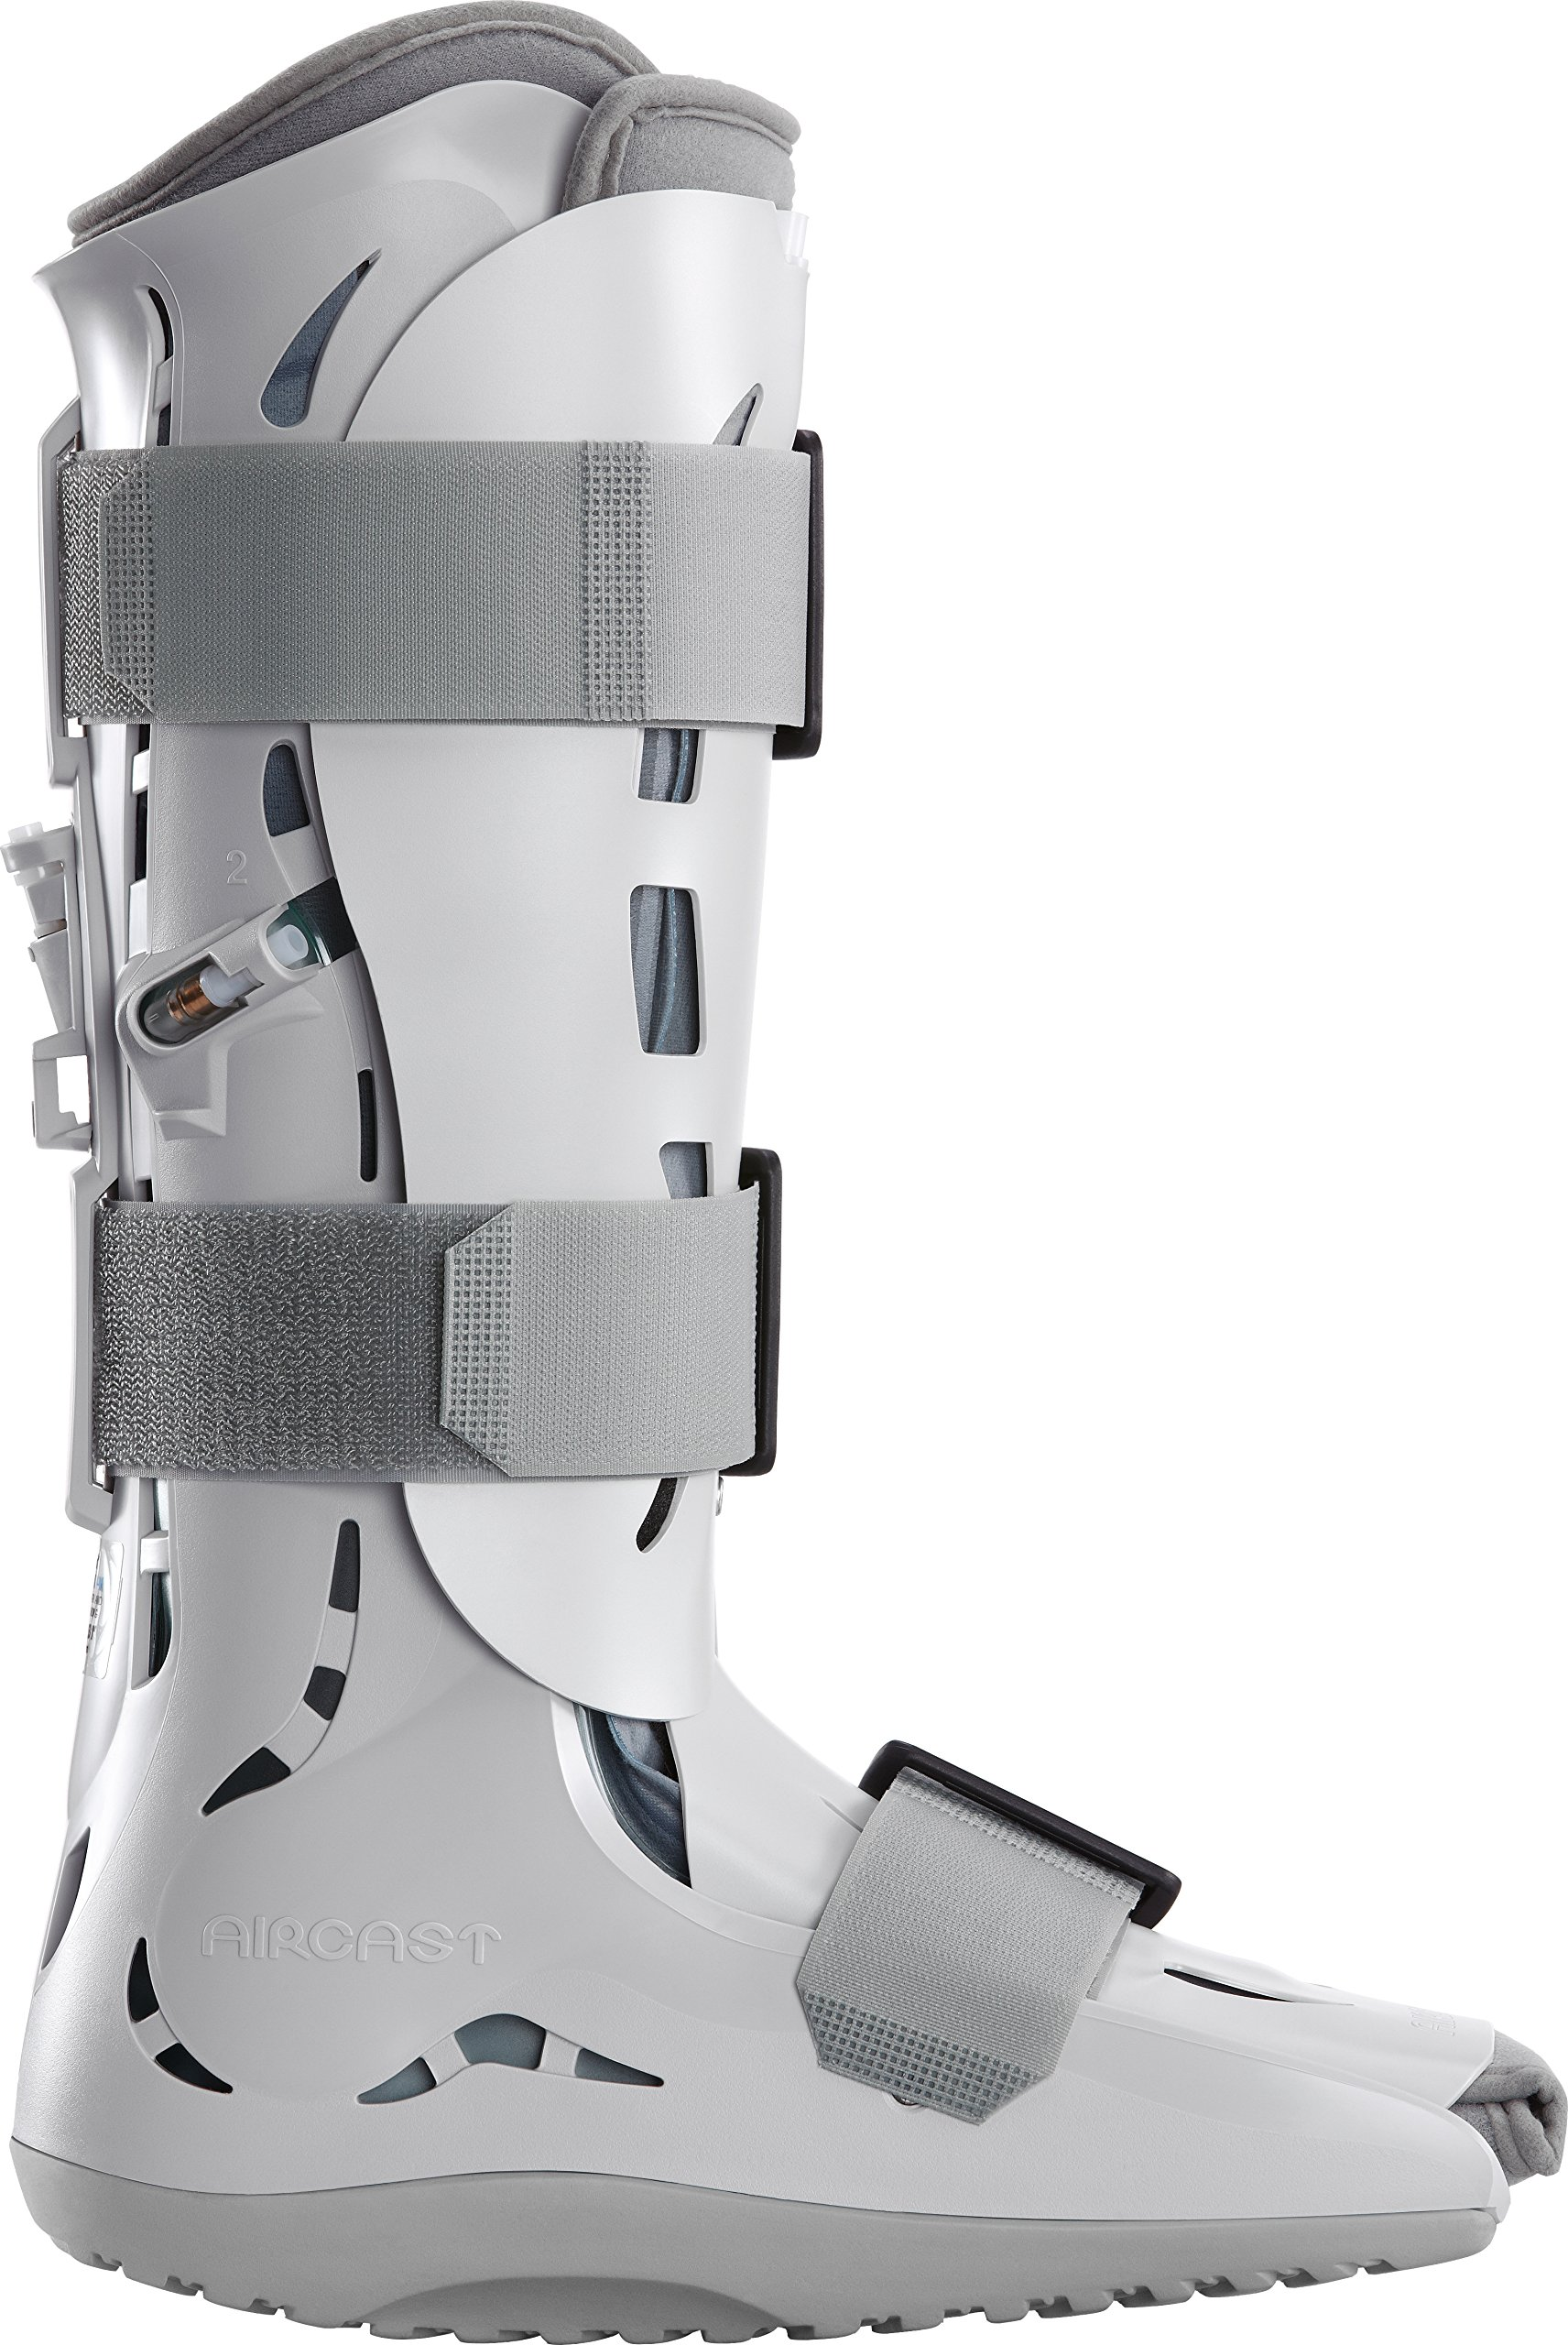 Aircast XP (Extra Pneumatic) Walker Brace / Walking Boot, Large by Aircast (Image #3)